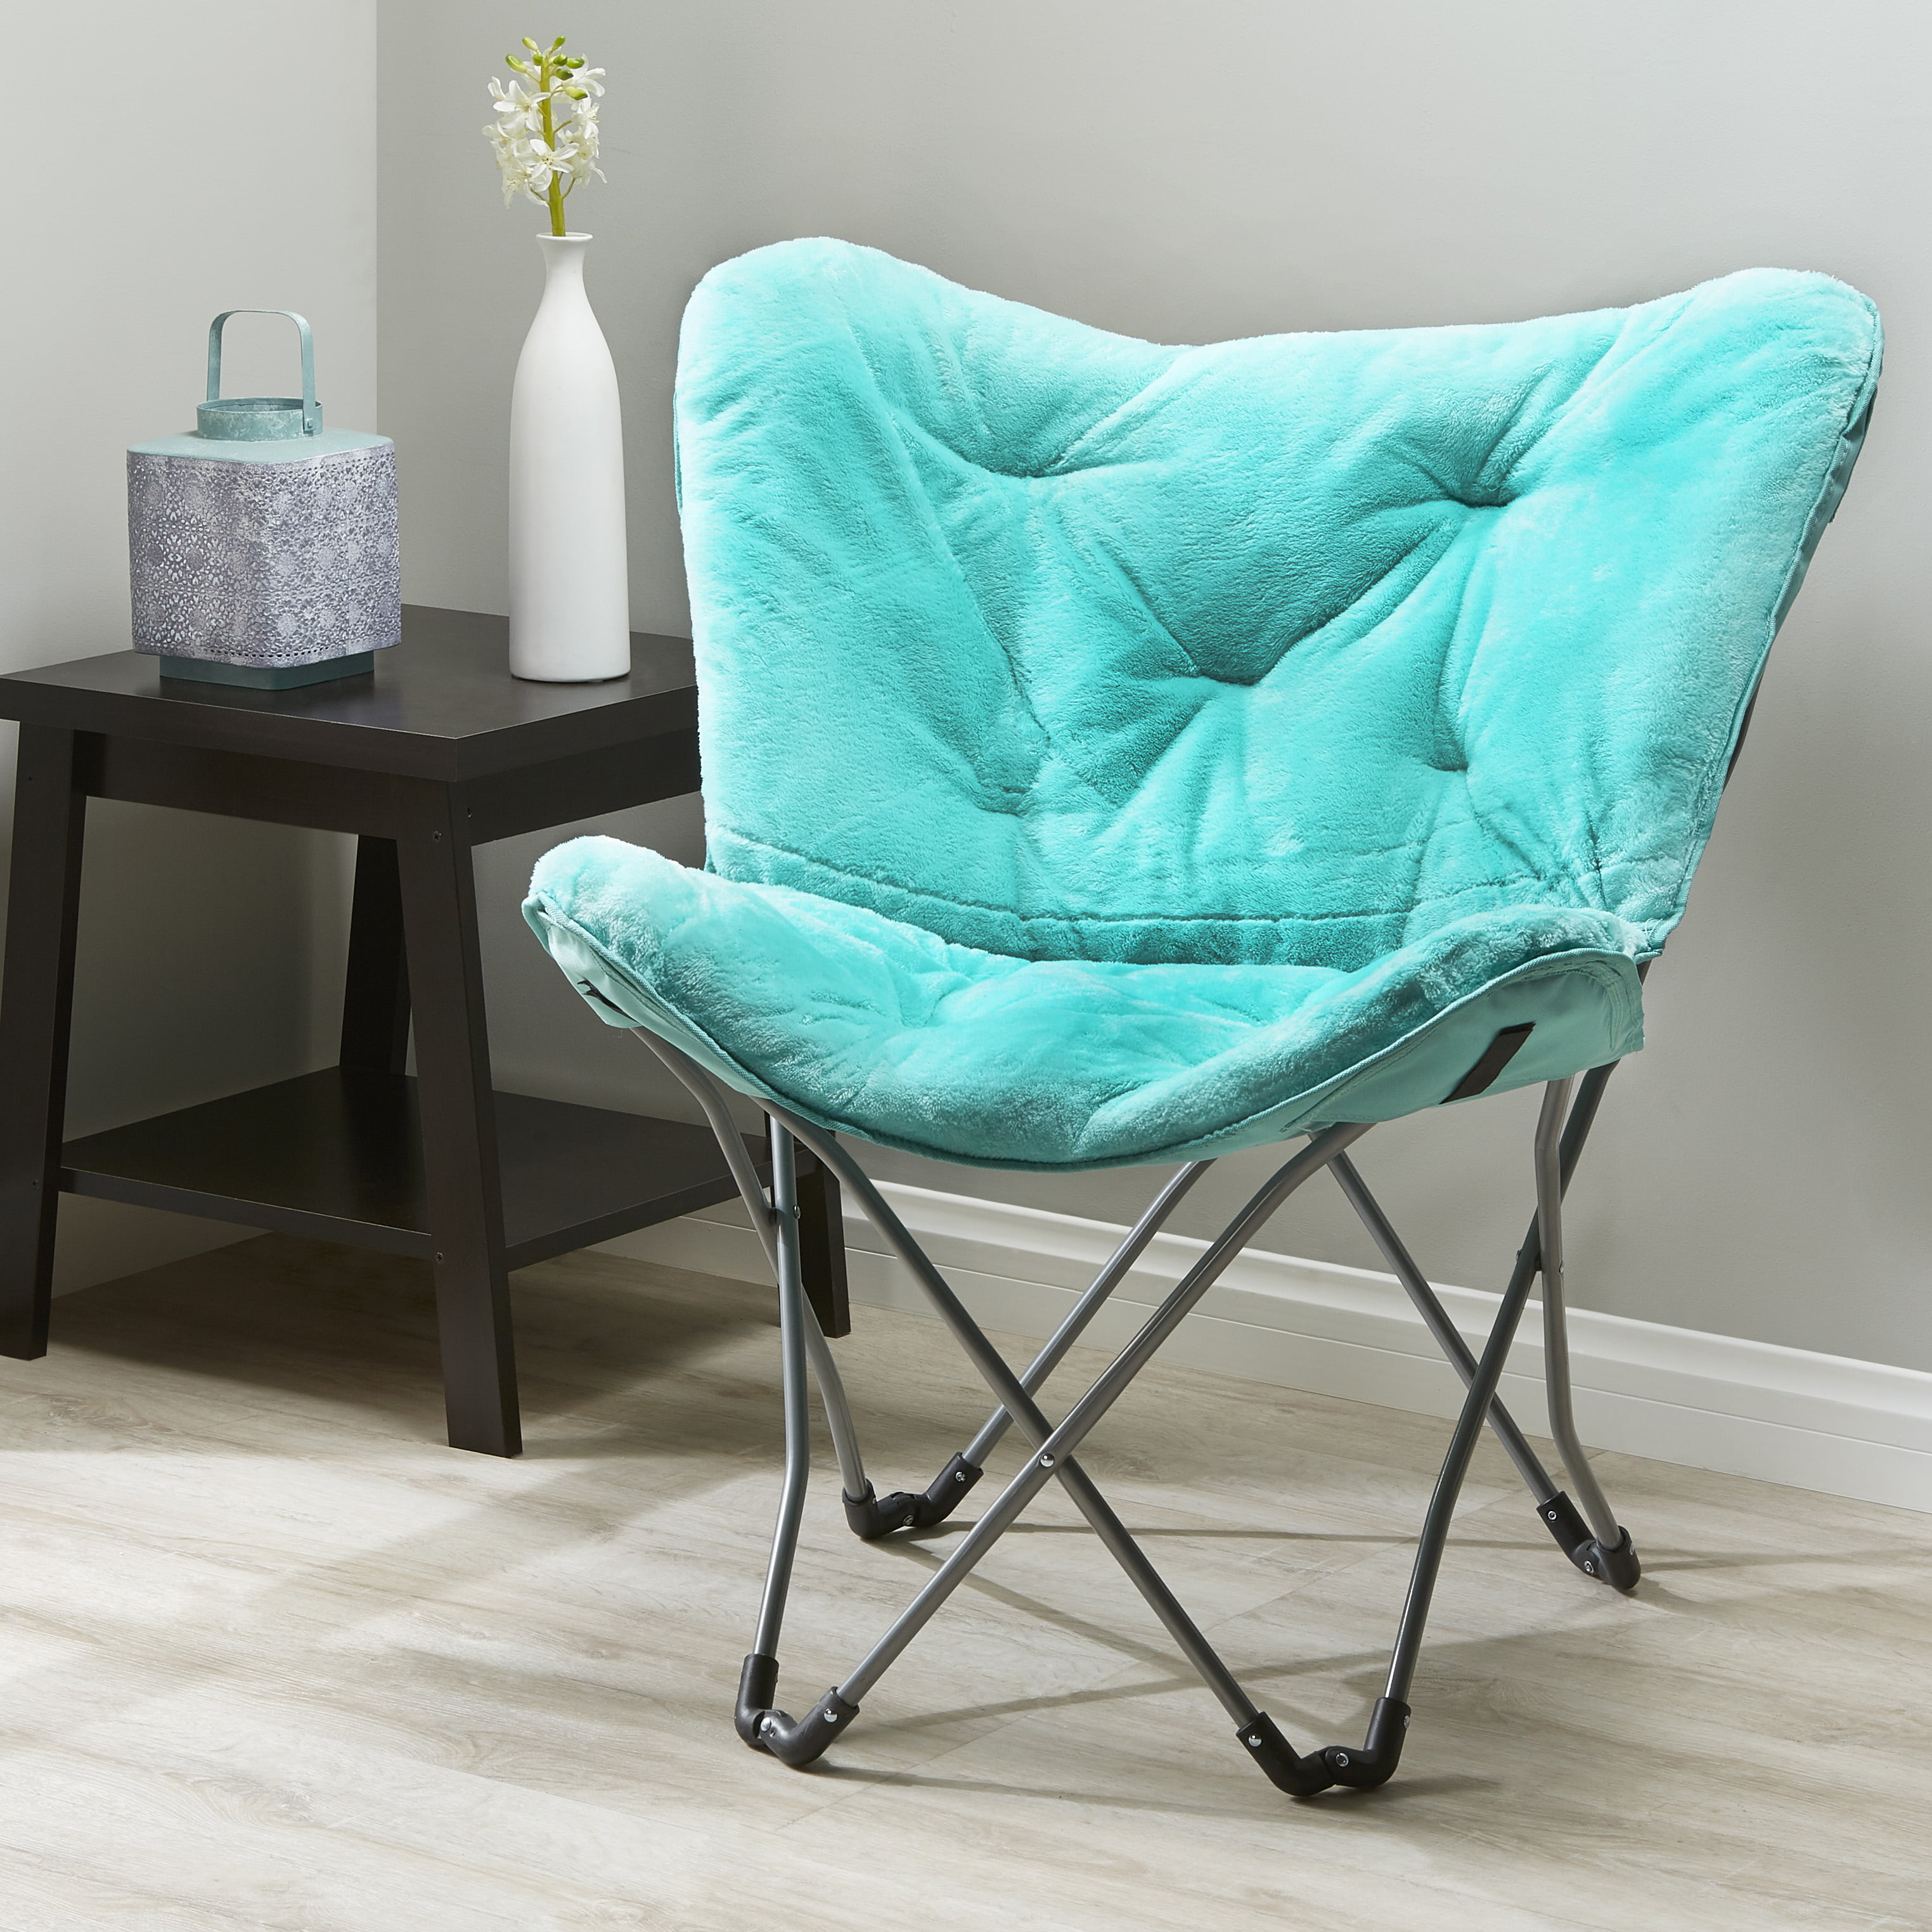 Amazing Mainstays Folding Butterfly Chair Multiple Colors Walmart Com Forskolin Free Trial Chair Design Images Forskolin Free Trialorg